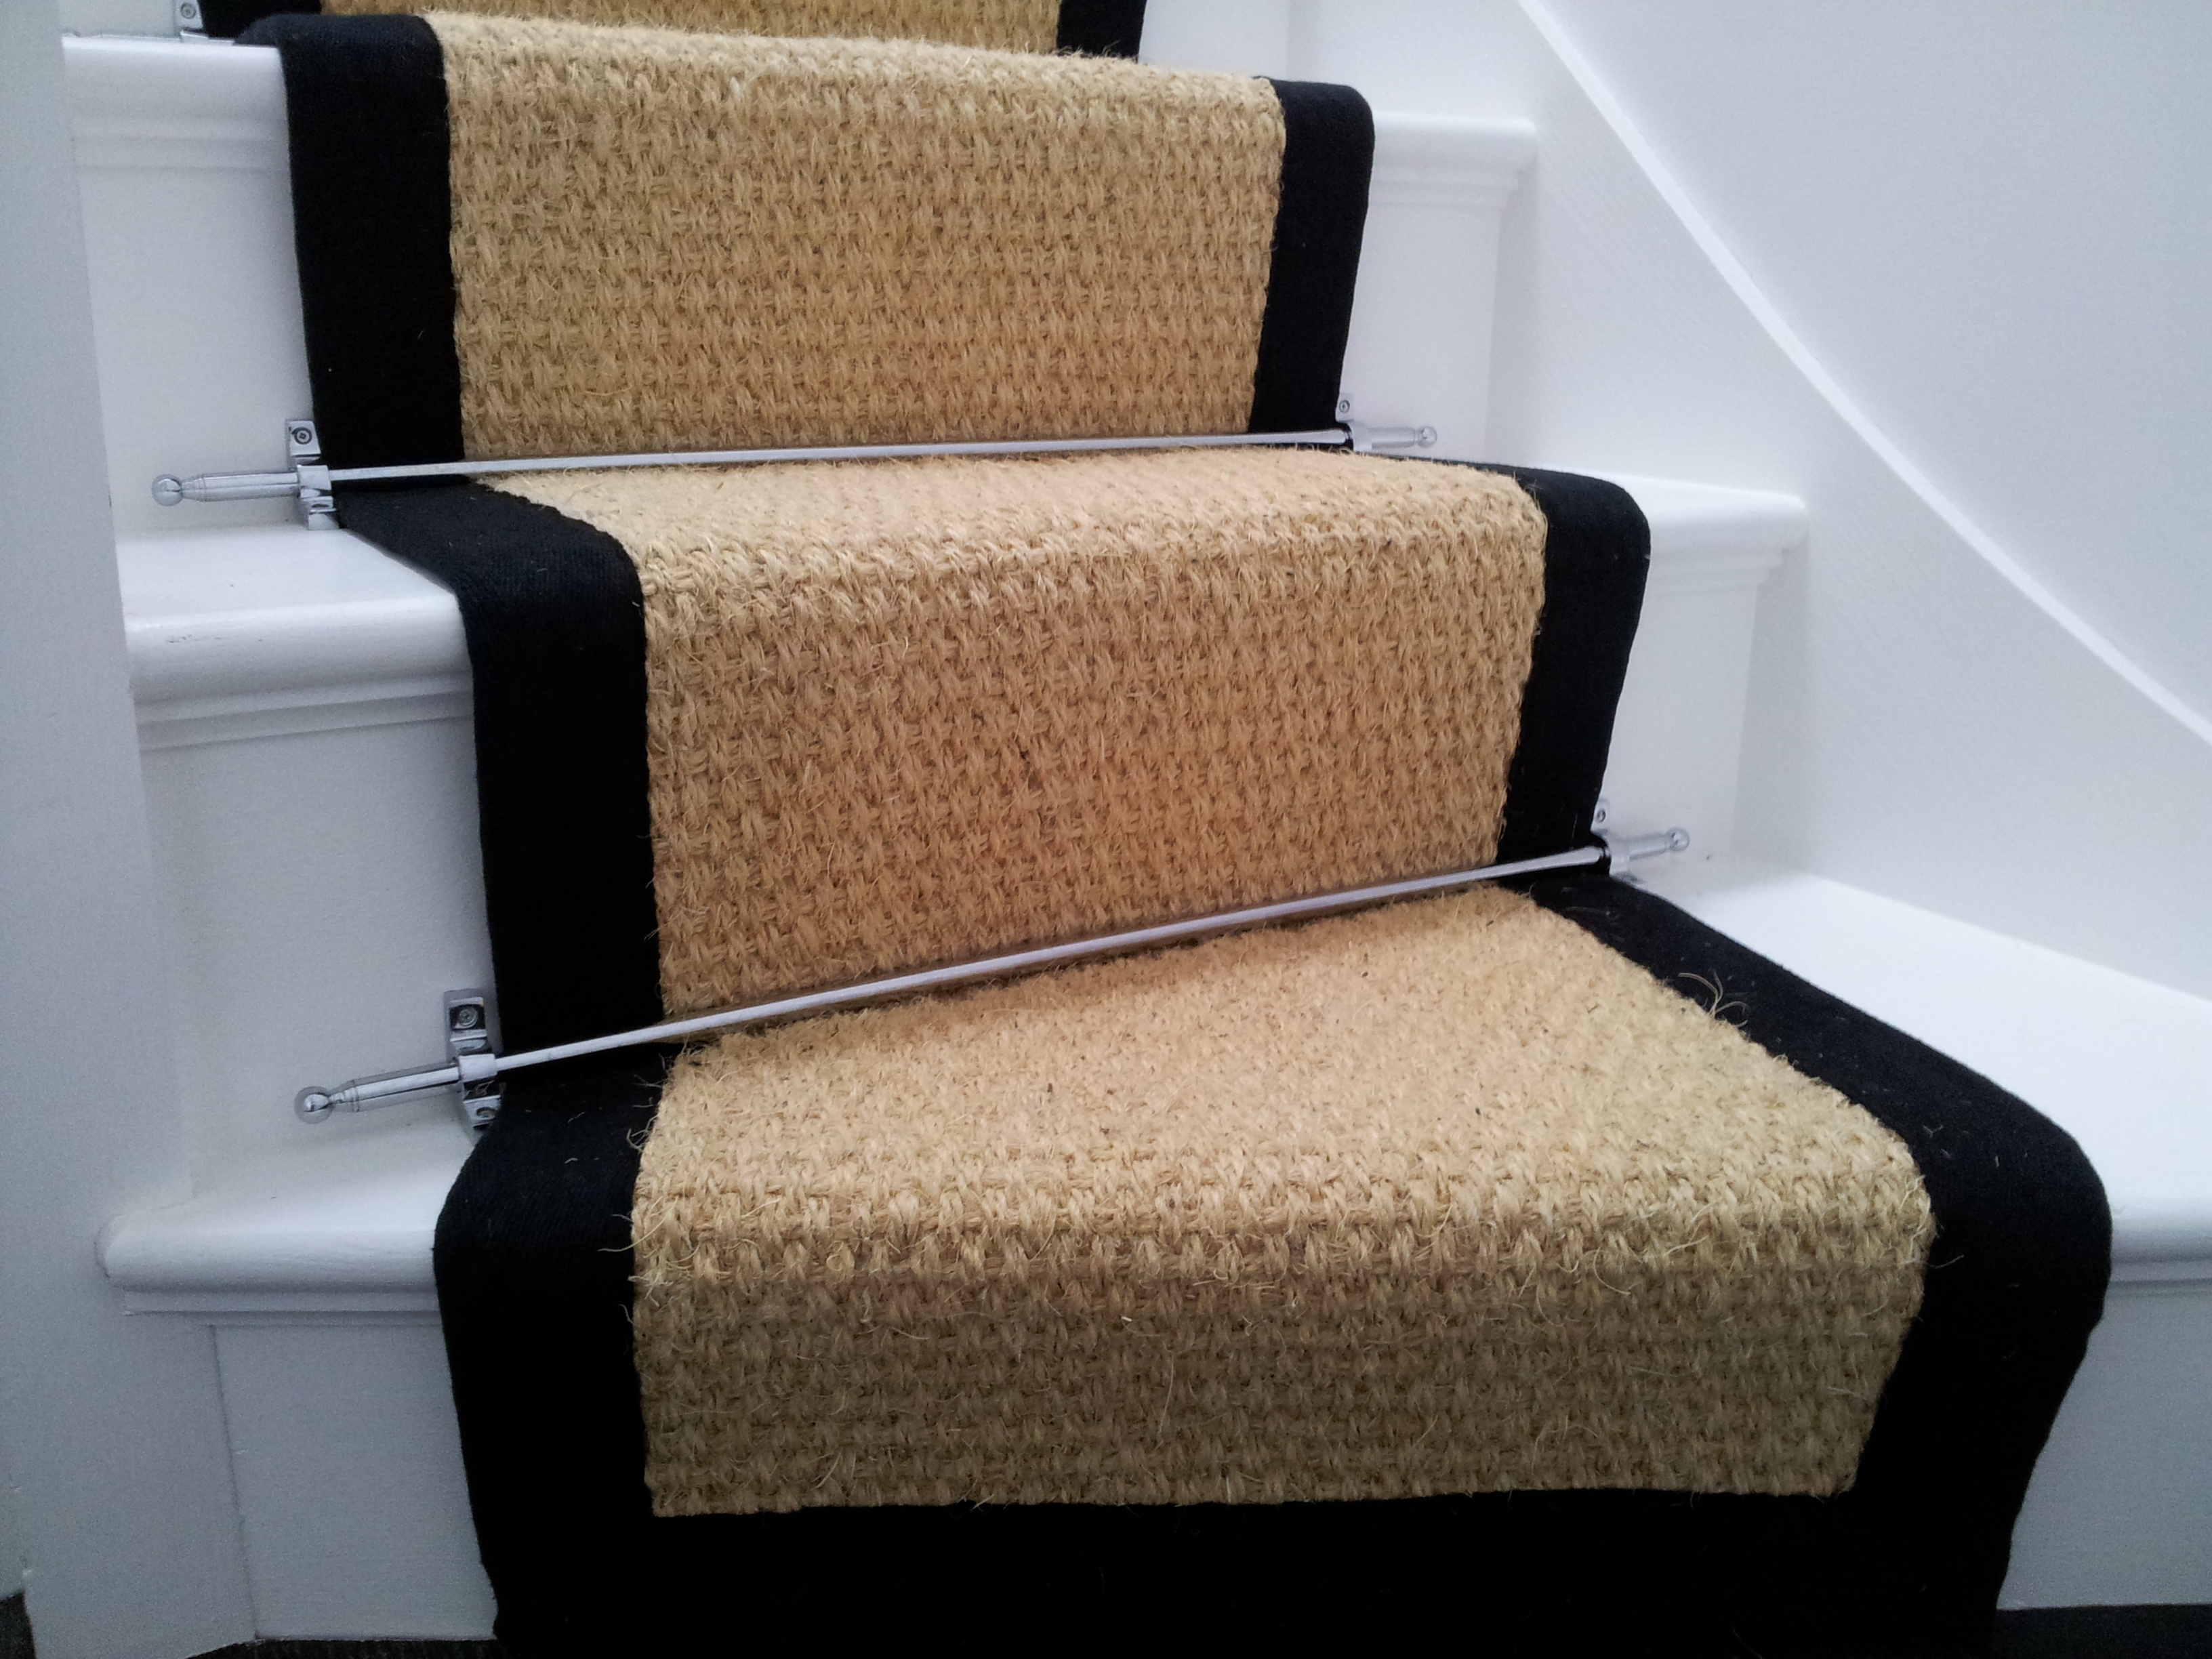 Carpet Runners For Stairs Barringer Trellis And Diamond Flatweave Pertaining To Stair Tread Rug Holders (Image 3 of 15)